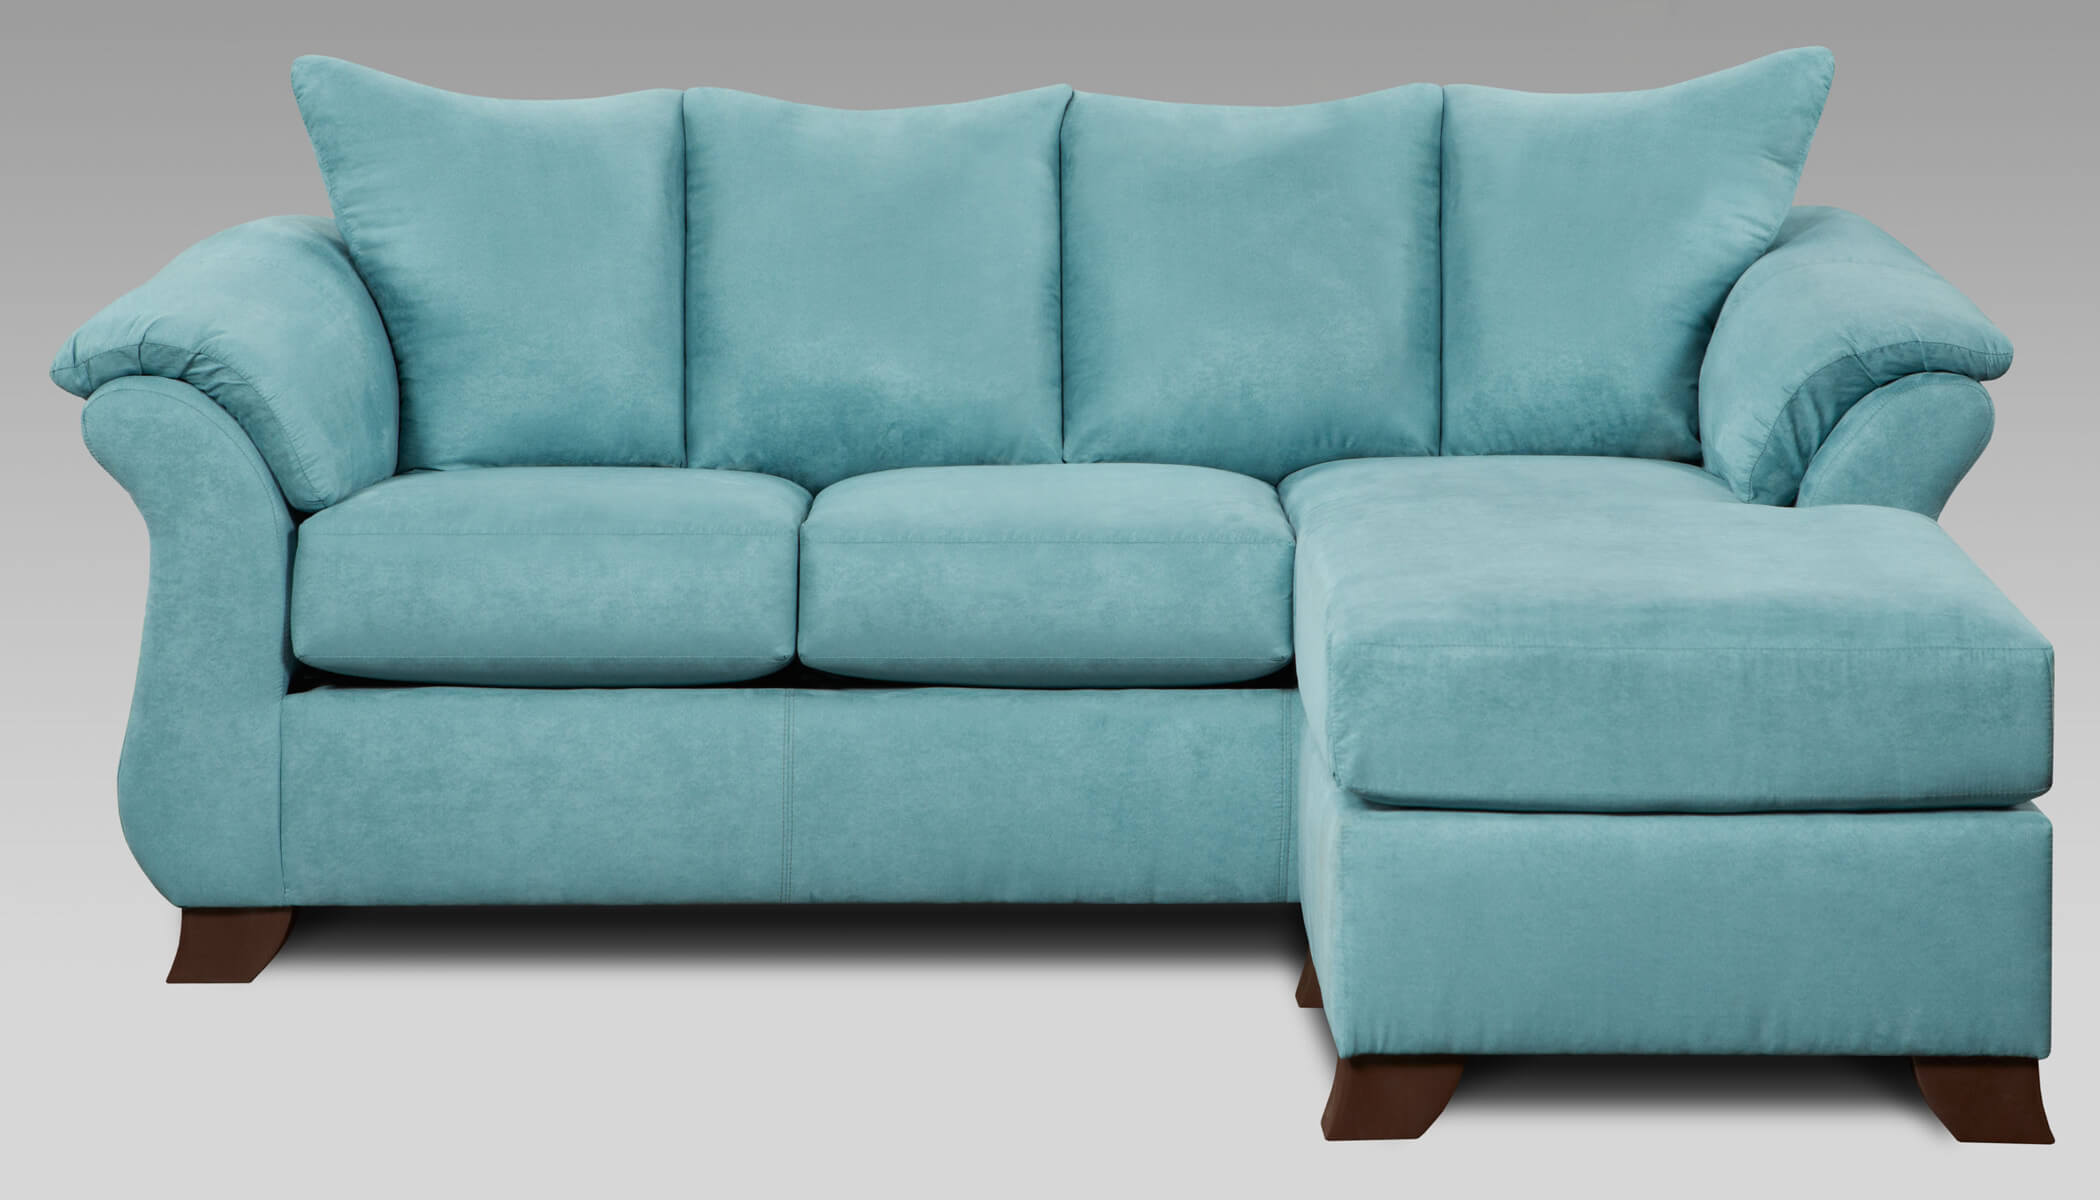 accent chairs on clearance rocking at target sensations capri sofa/chaise | sectional sofa sets